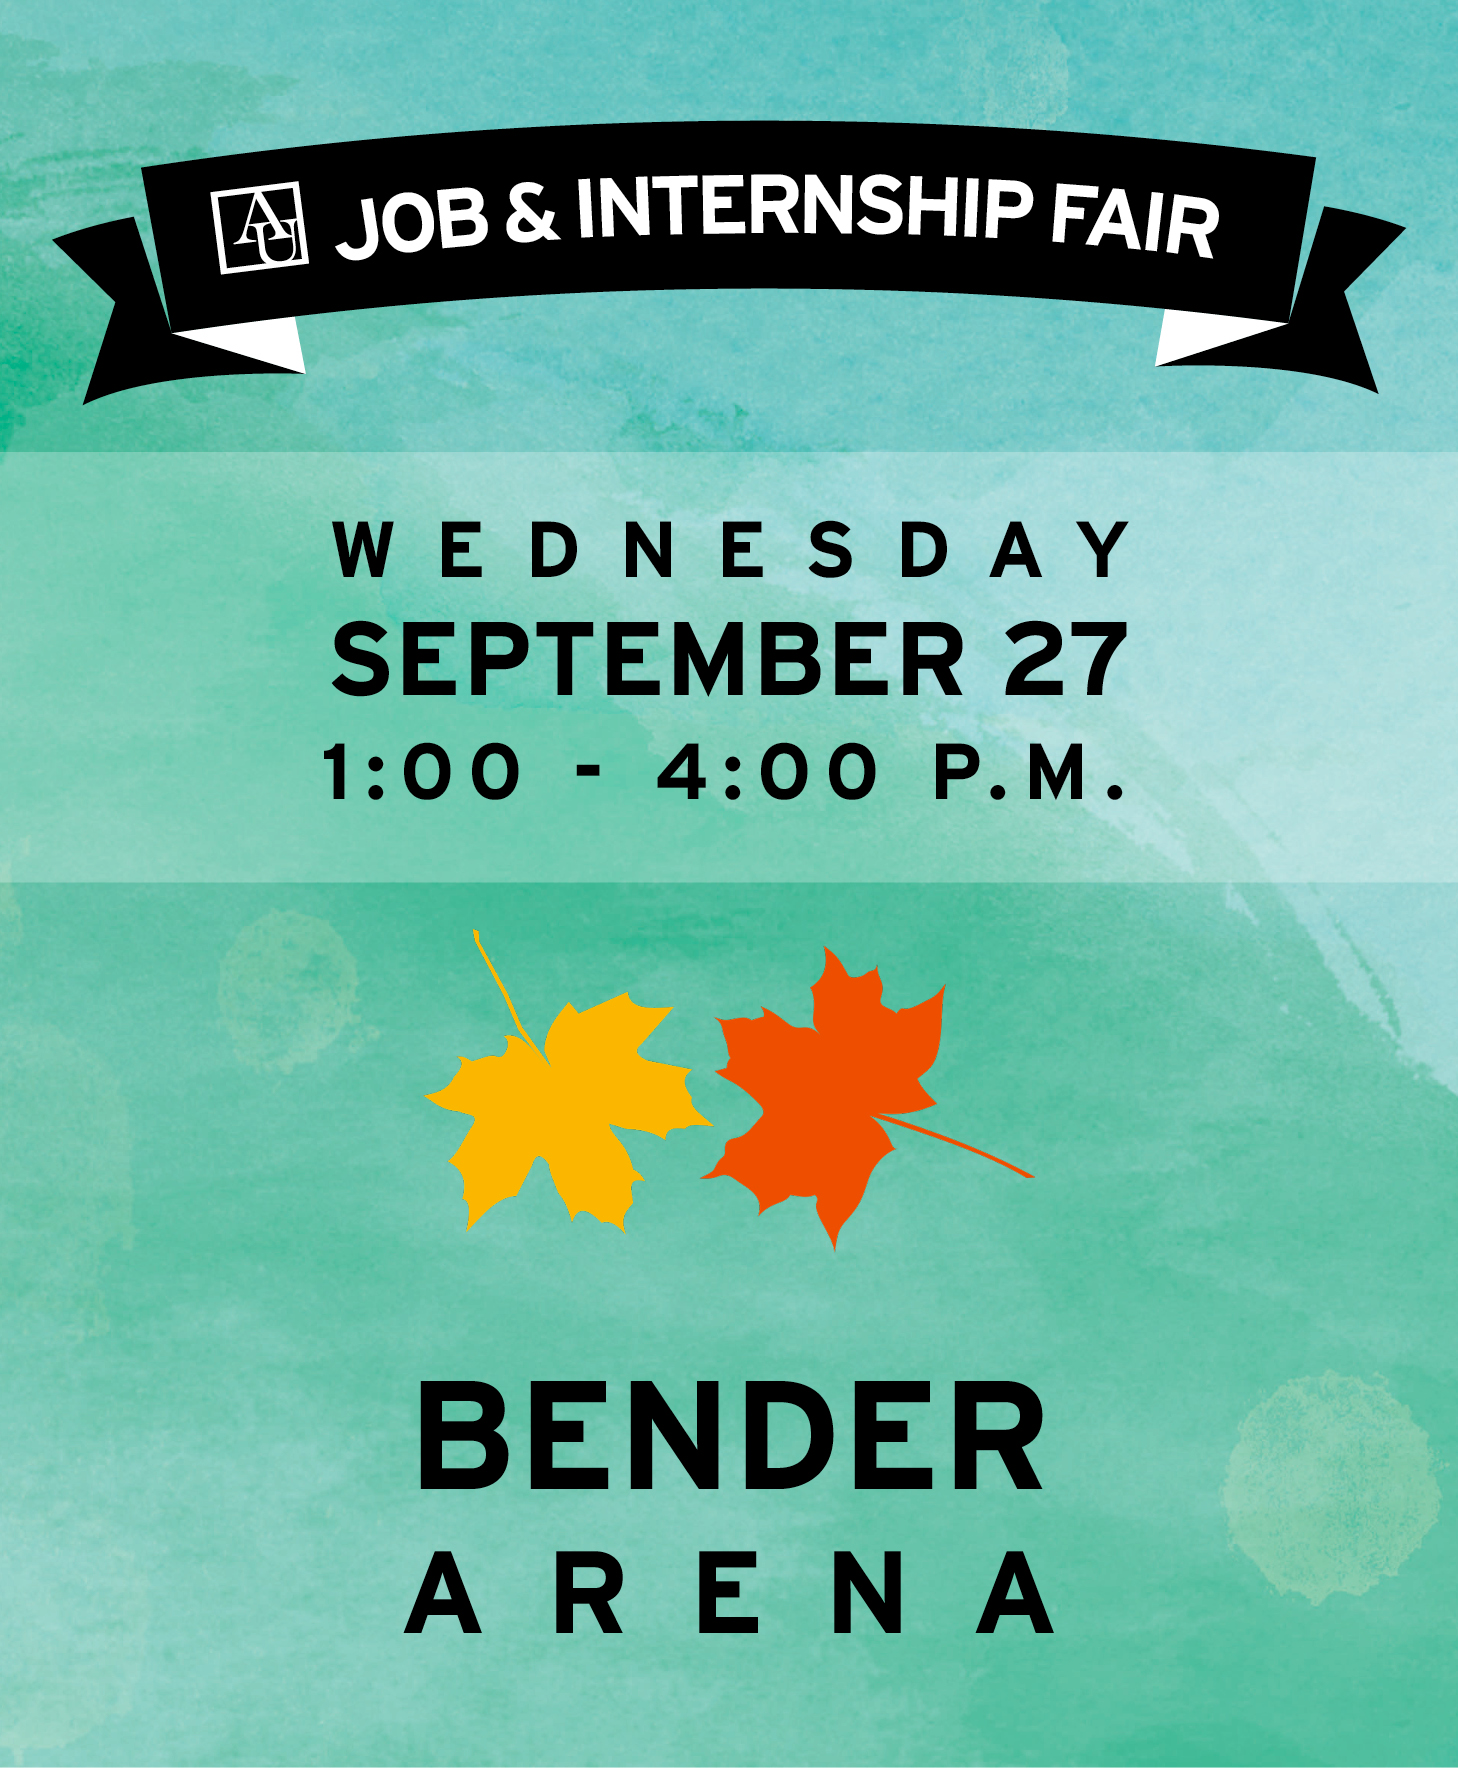 Job and Internship Fair from 1-4 p.m. September 27 in Bender Arena